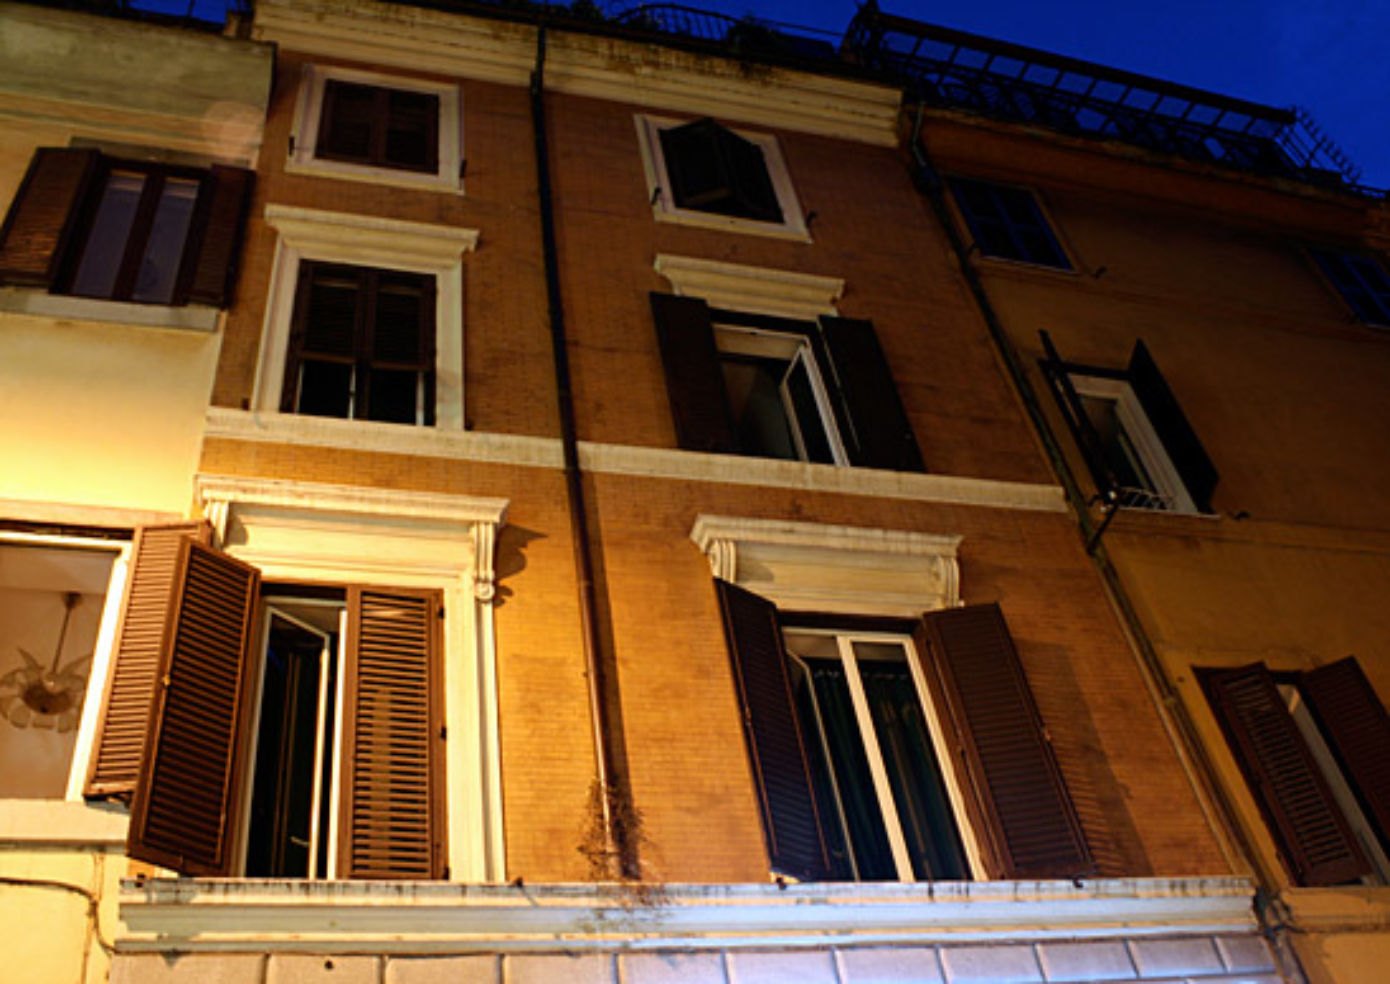 The façade of Hotel Panda, which resembles a typical apartment building in Rome's historic center.